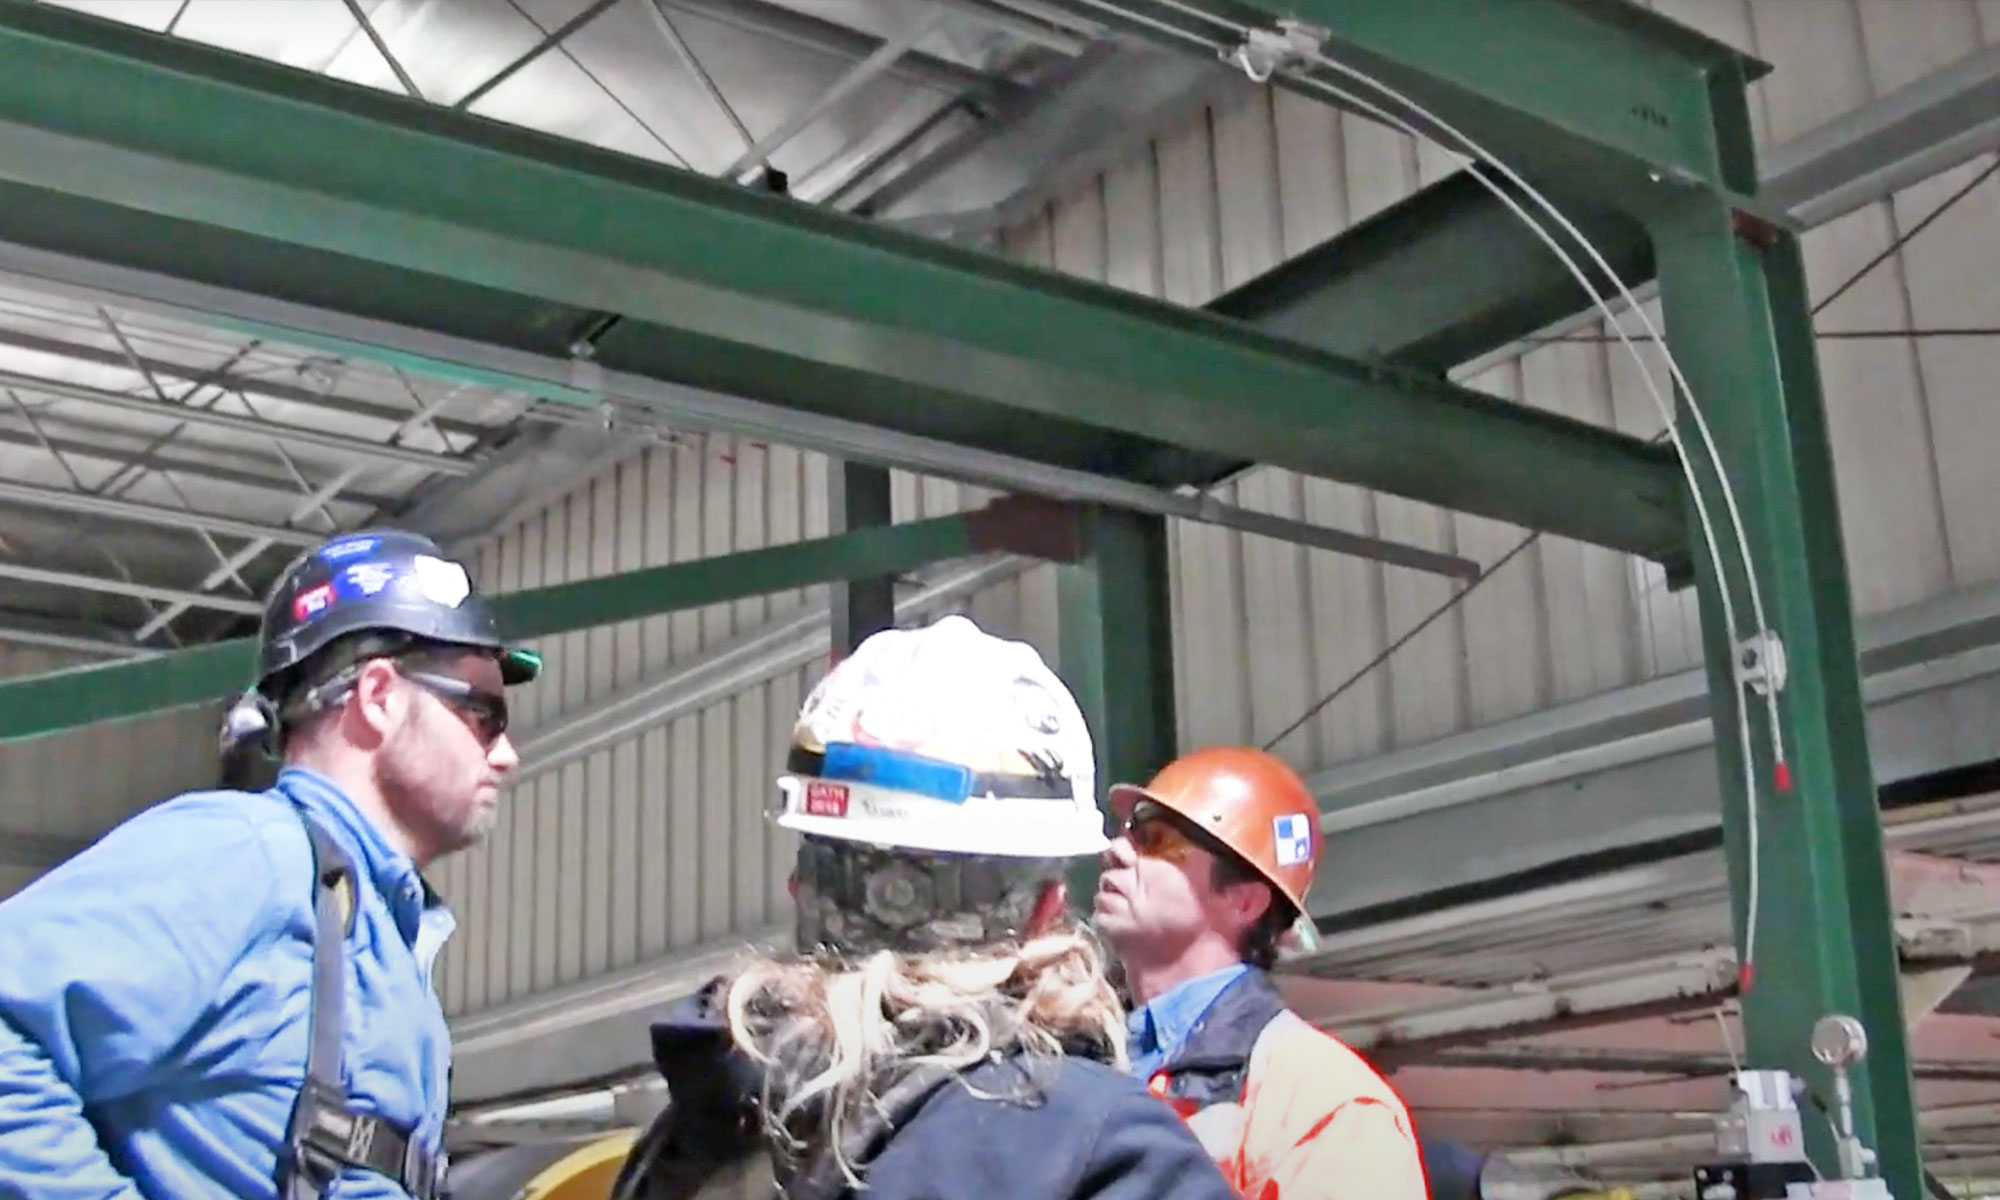 How Tractel TravSafe Lifeline Systems Helped Eliminate Fall Hazards at TATA Steel